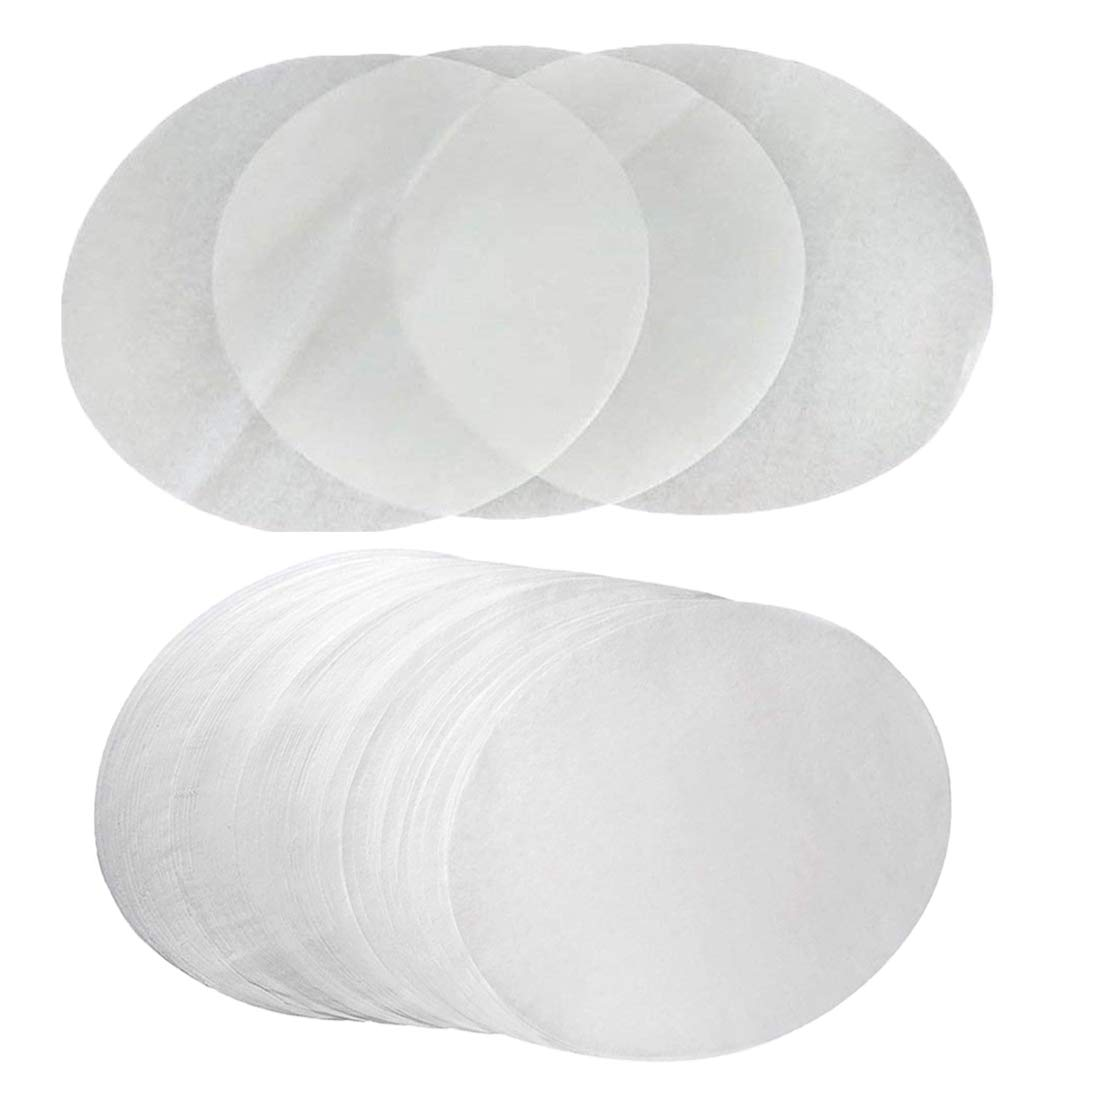 (Set of 200) Parchment Paper 9 Inch Diameter Round Non-Stick Baking Paper Liners for Cake Pans Circle Cookies Cheesecake and Deep Dish Pizza LQQDD